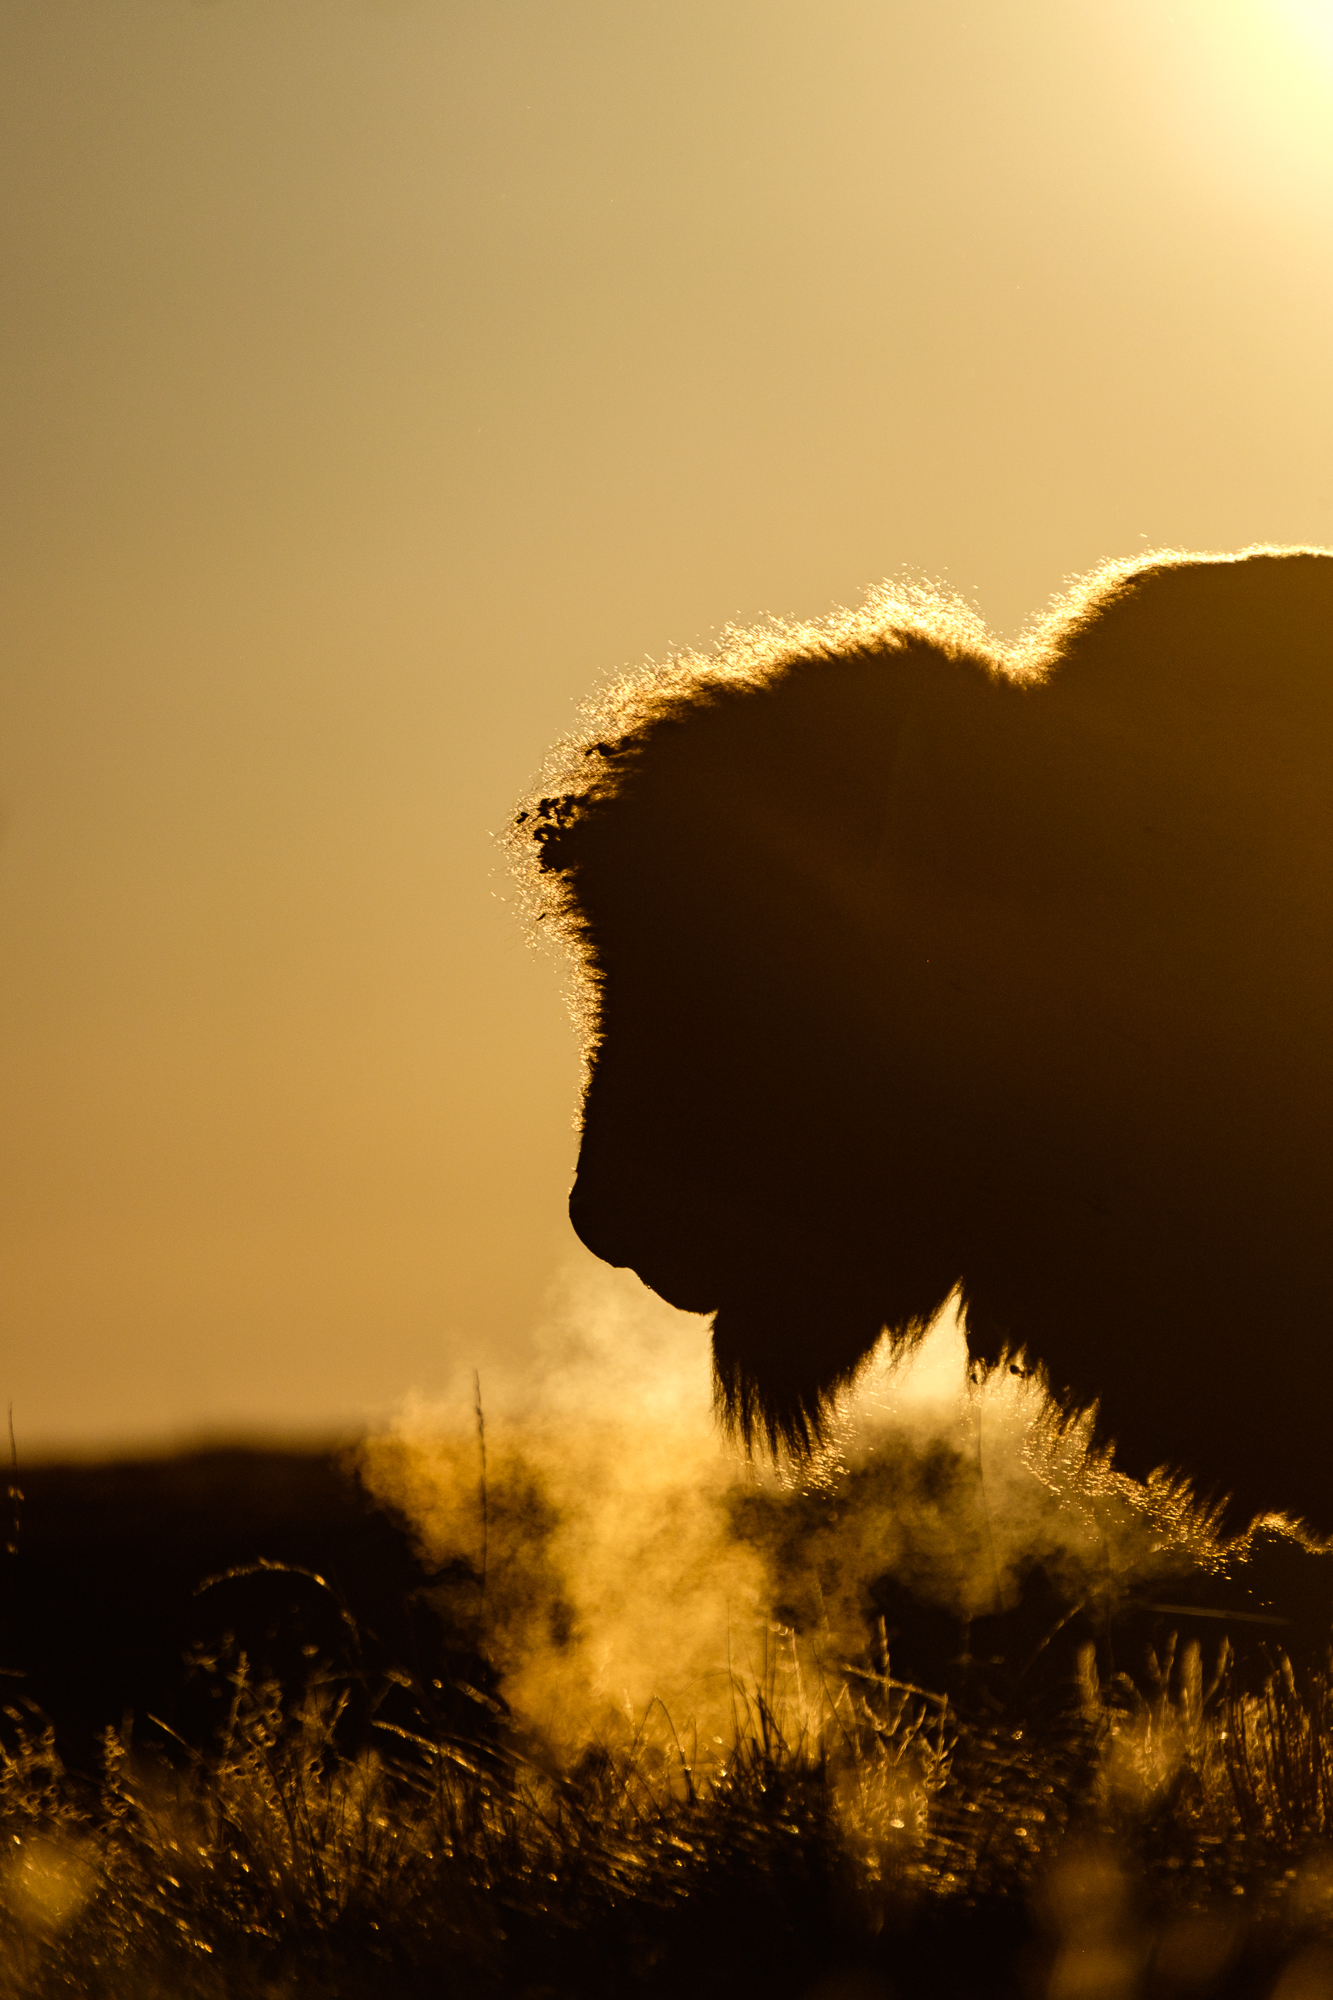 A bison's hot breath steams up a sunrise morning.